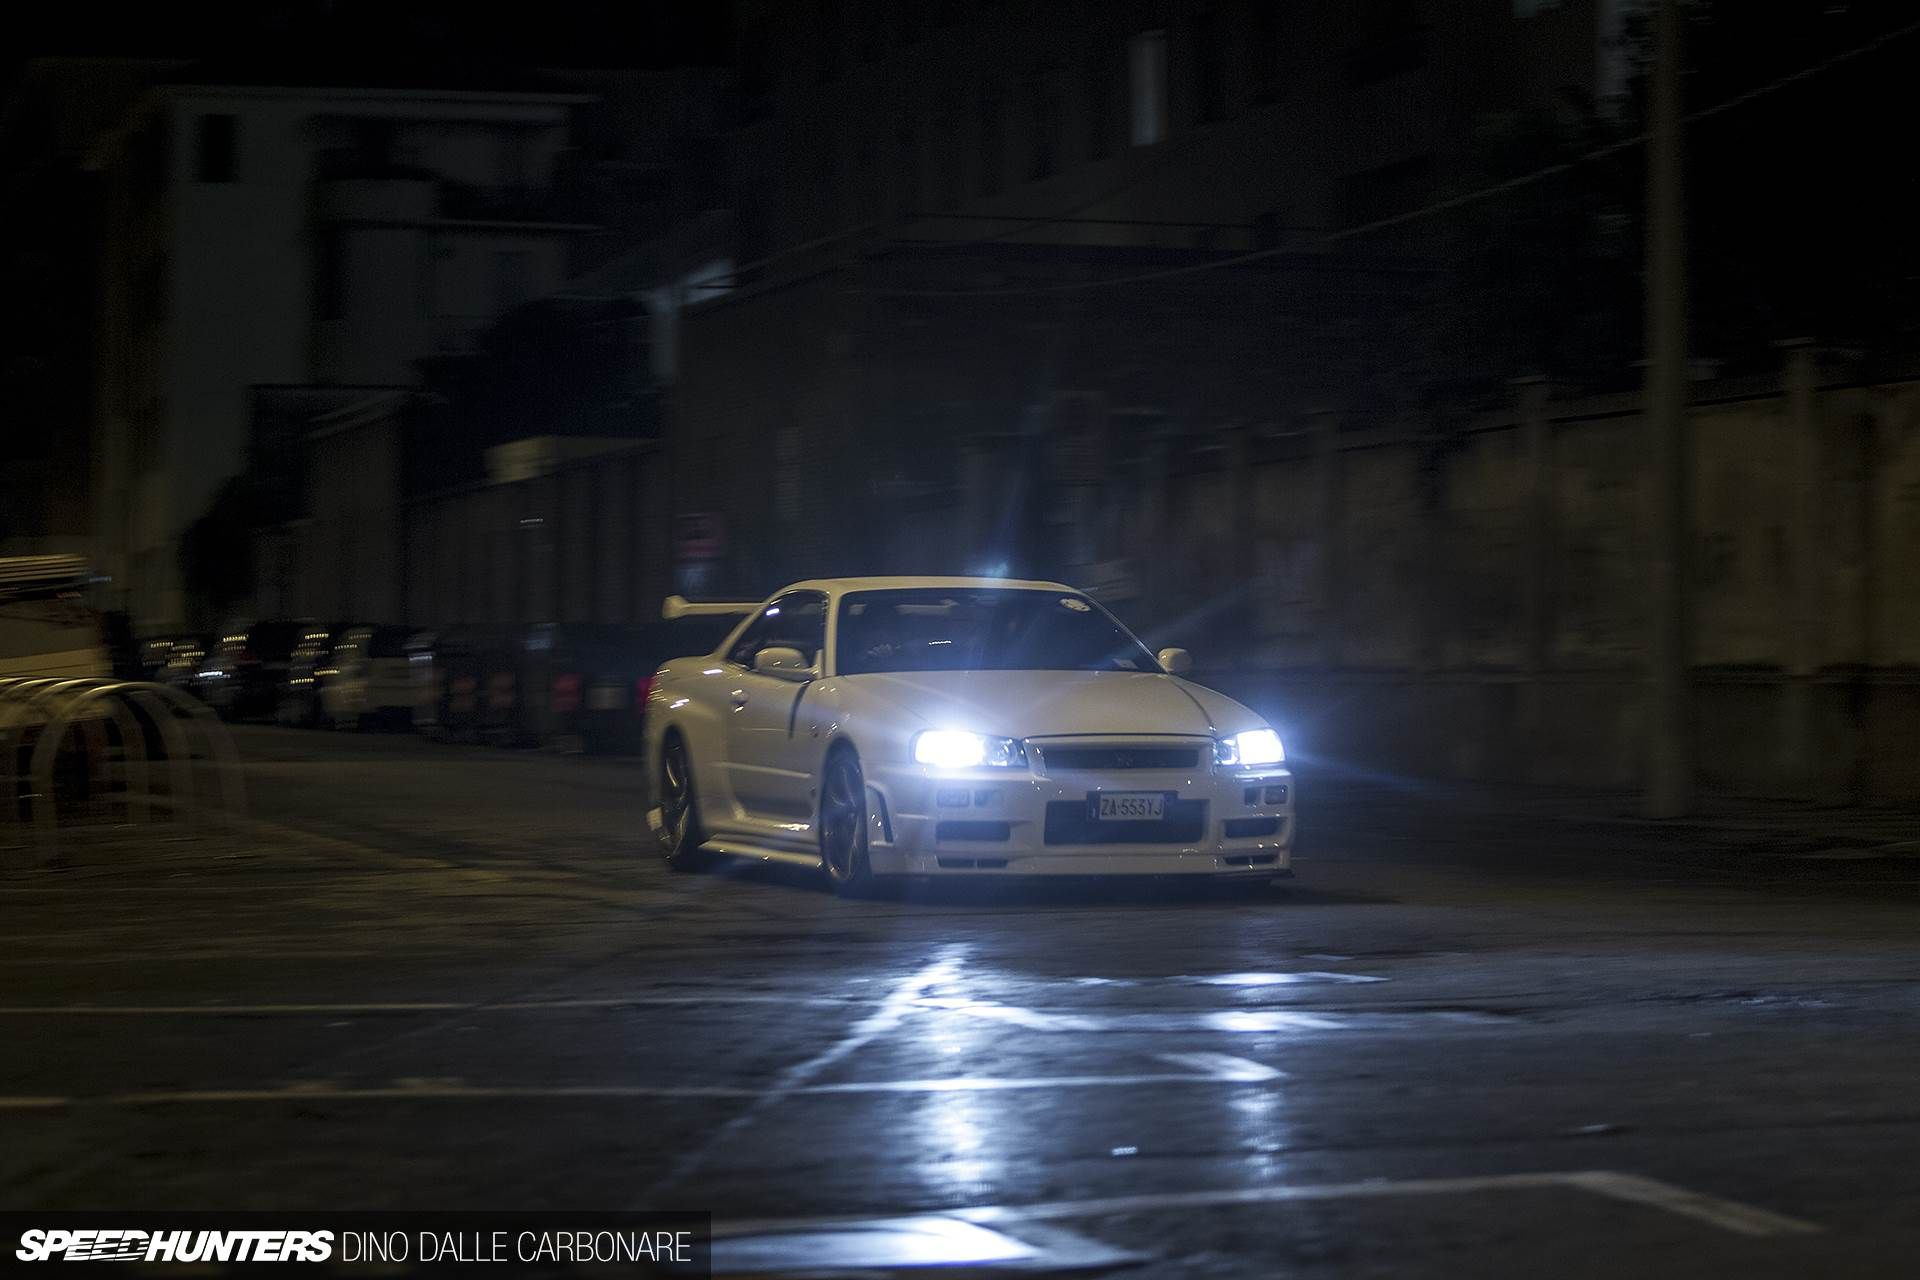 Nissan Skyline GTR V Black Car, Night Wallpaper